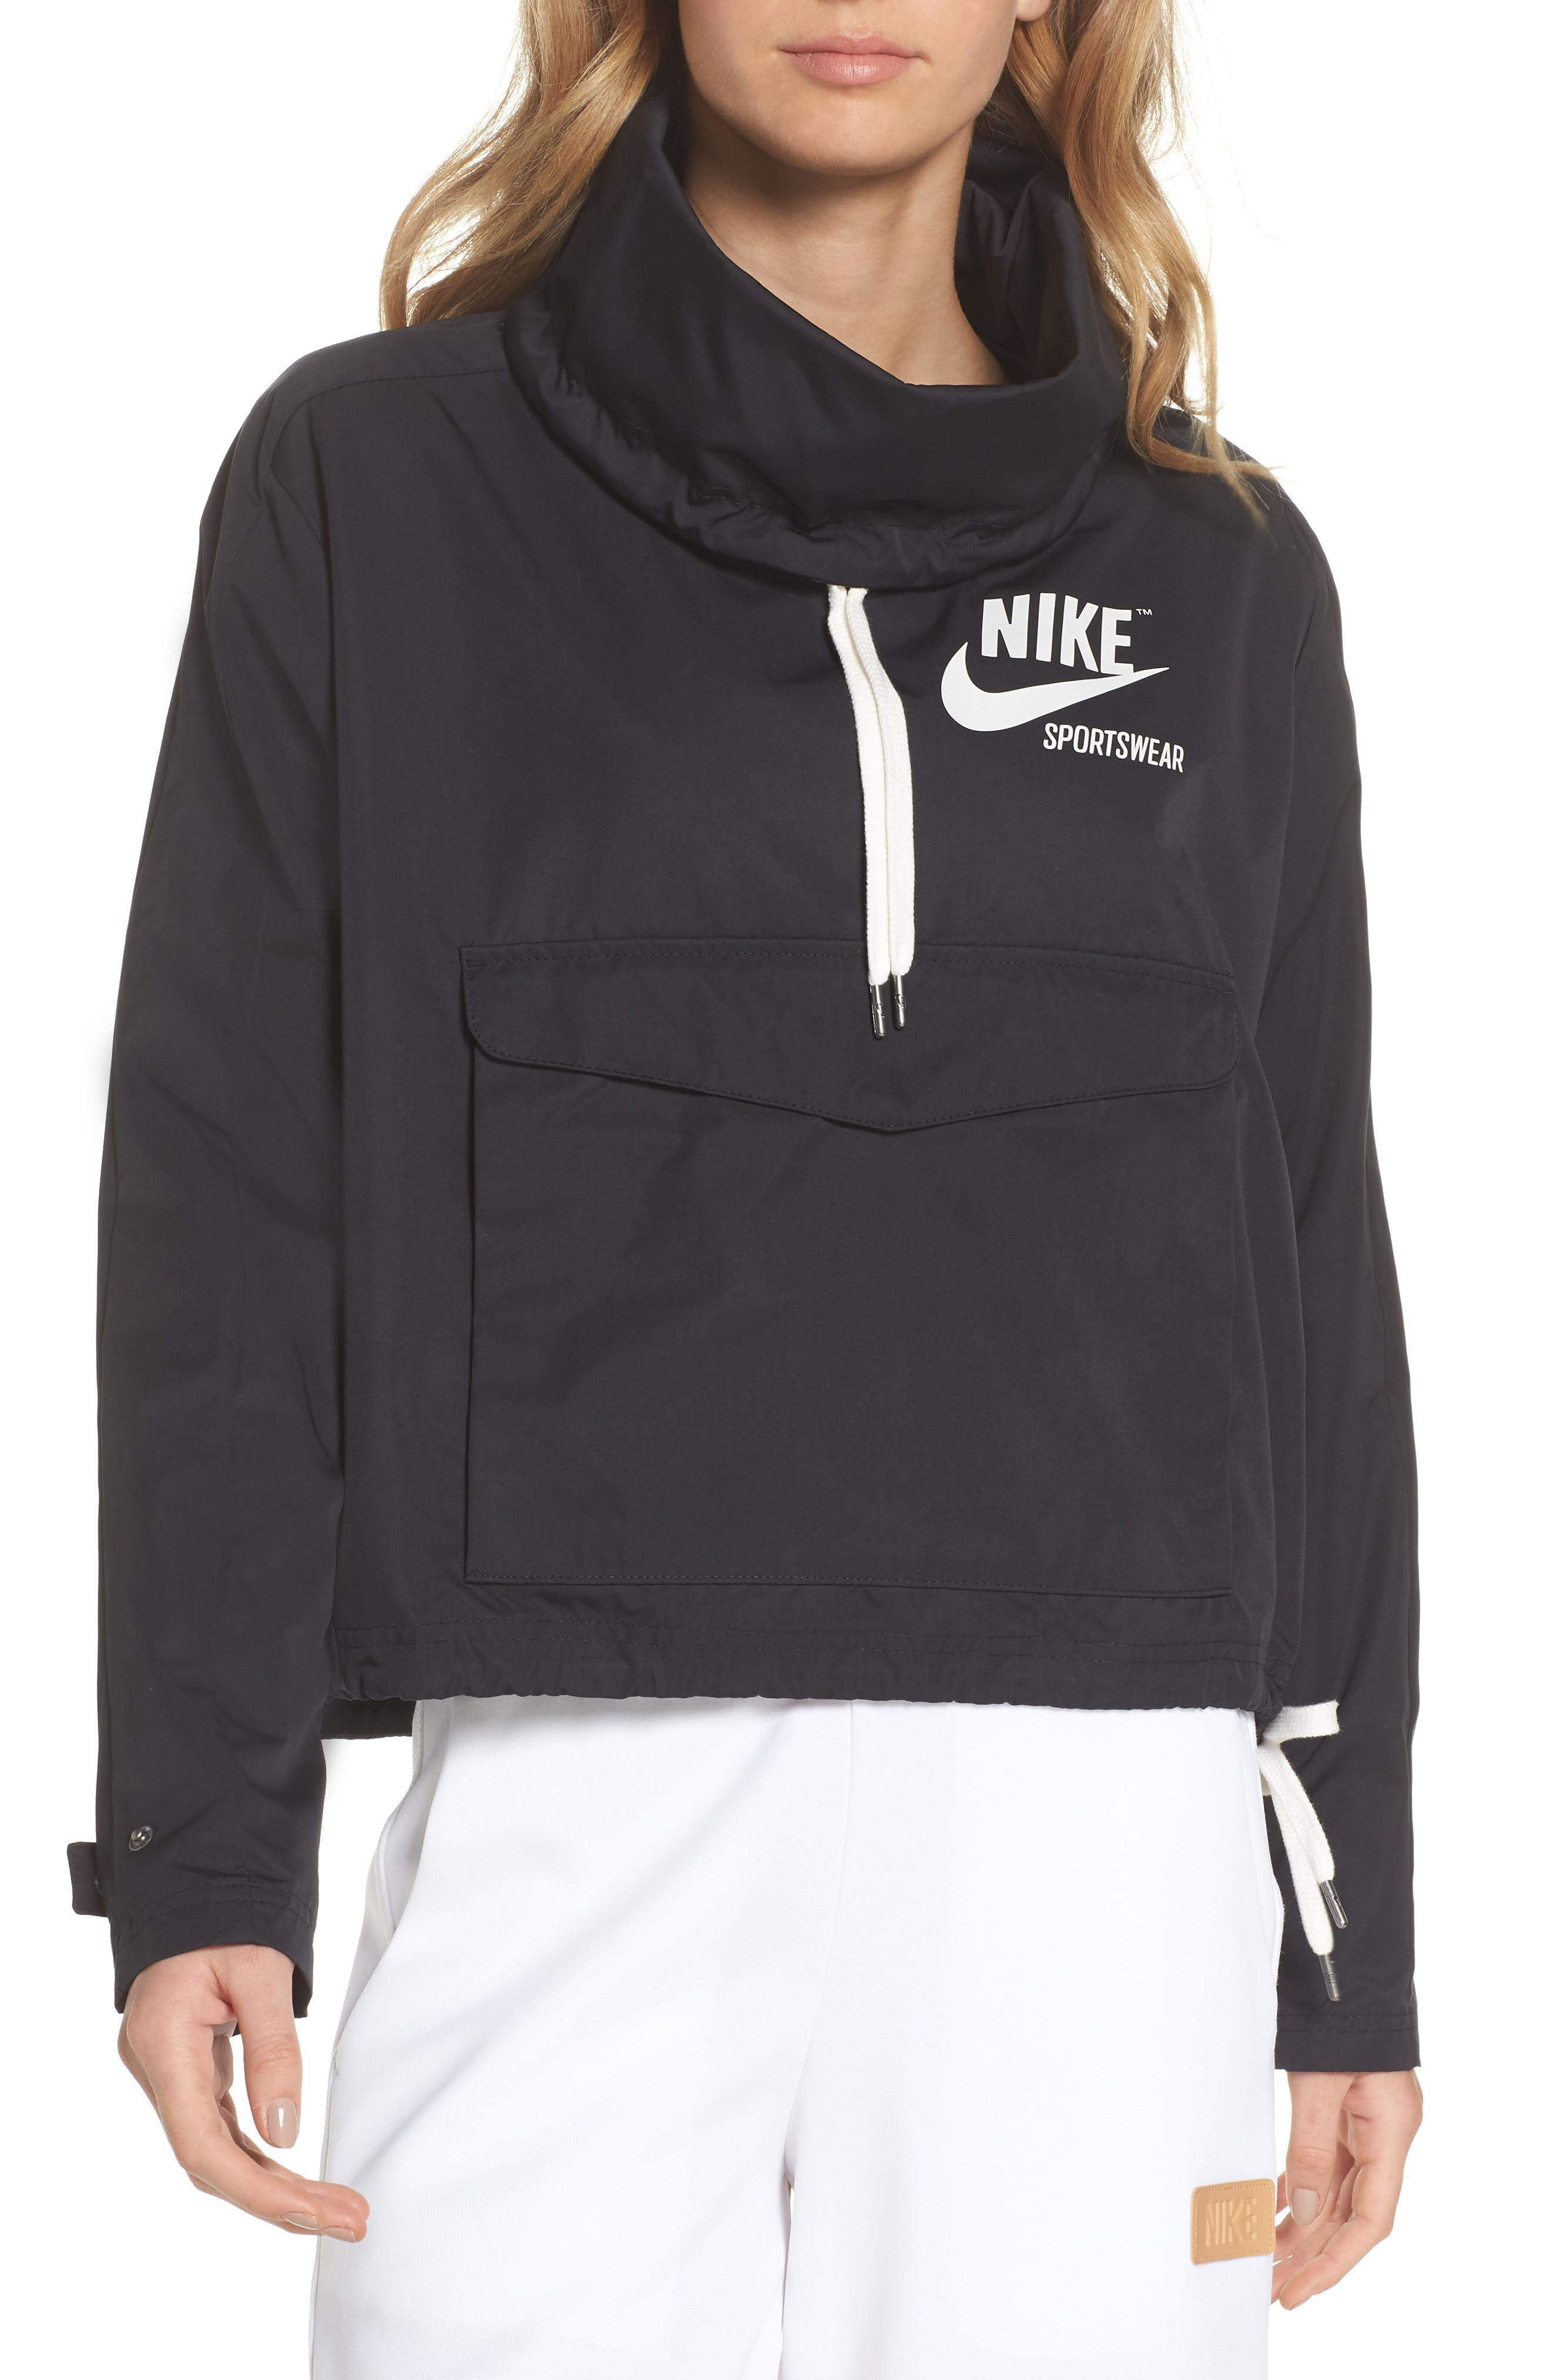 Sportswear Archive Jacket,                             Main thumbnail 1, color,